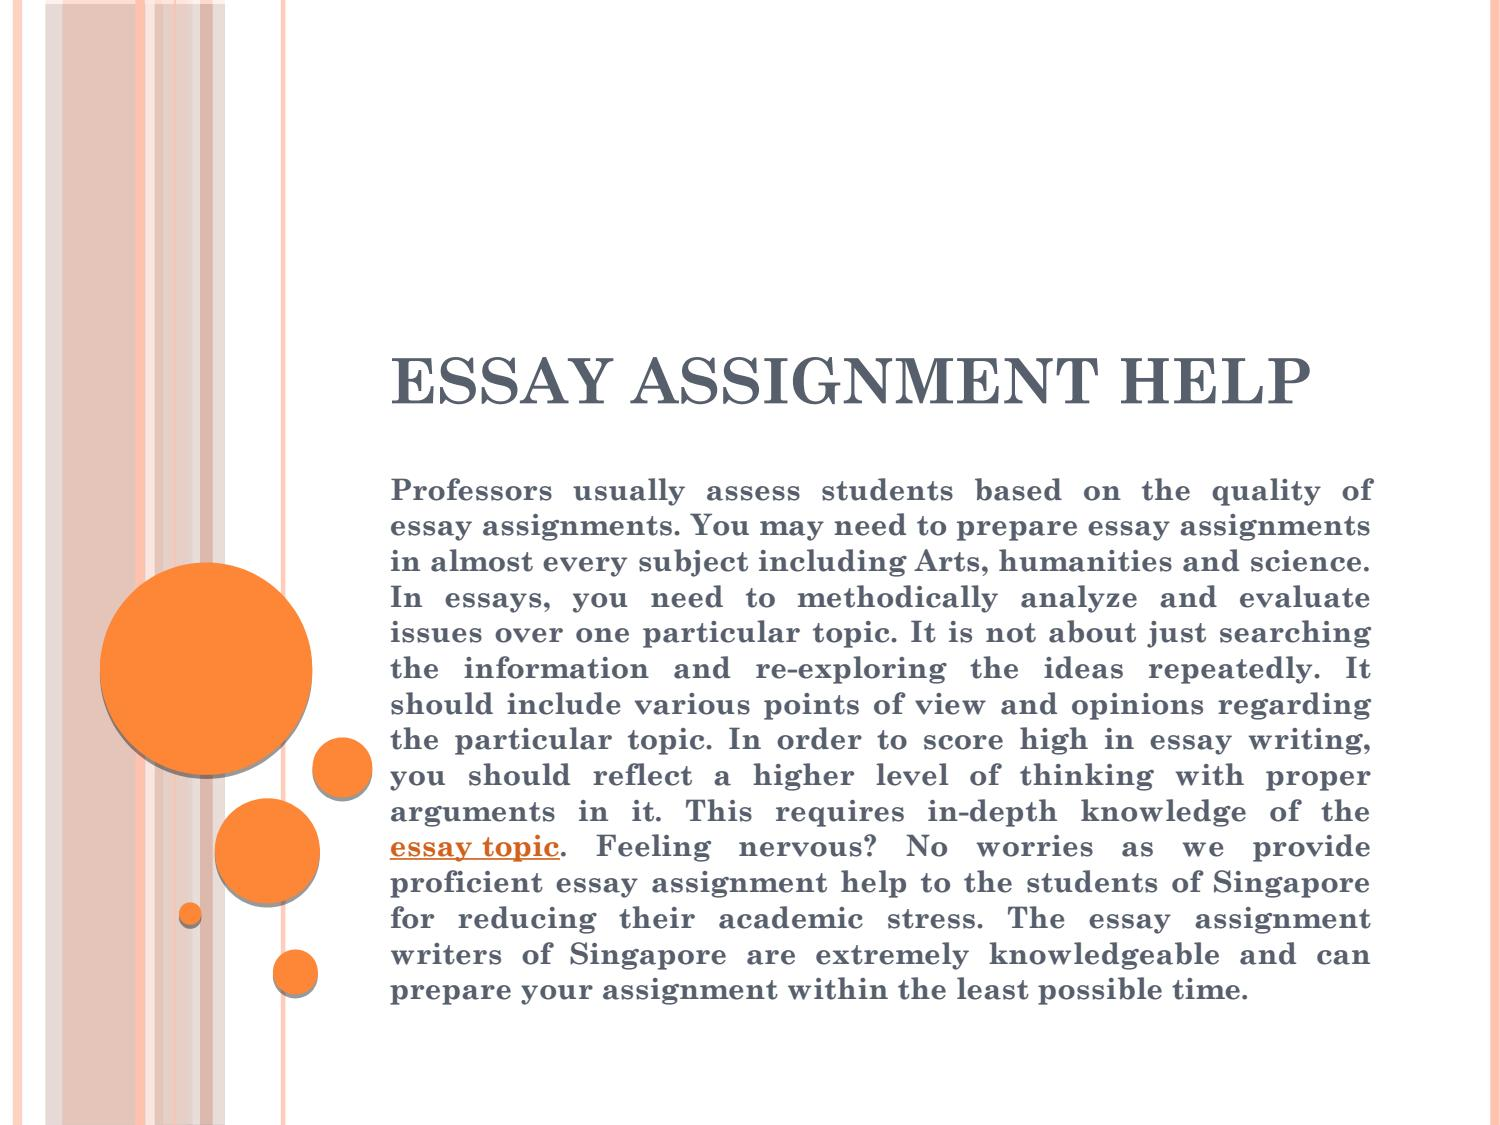 mis assignment essays Assignment 2 mis project your presentationis to be electronically submitted through the link in the cis8000 studydesk it should contain a url link to your video presentation on youtube or any other presentation system of your choice, you must test the link to ensure it works effectively.